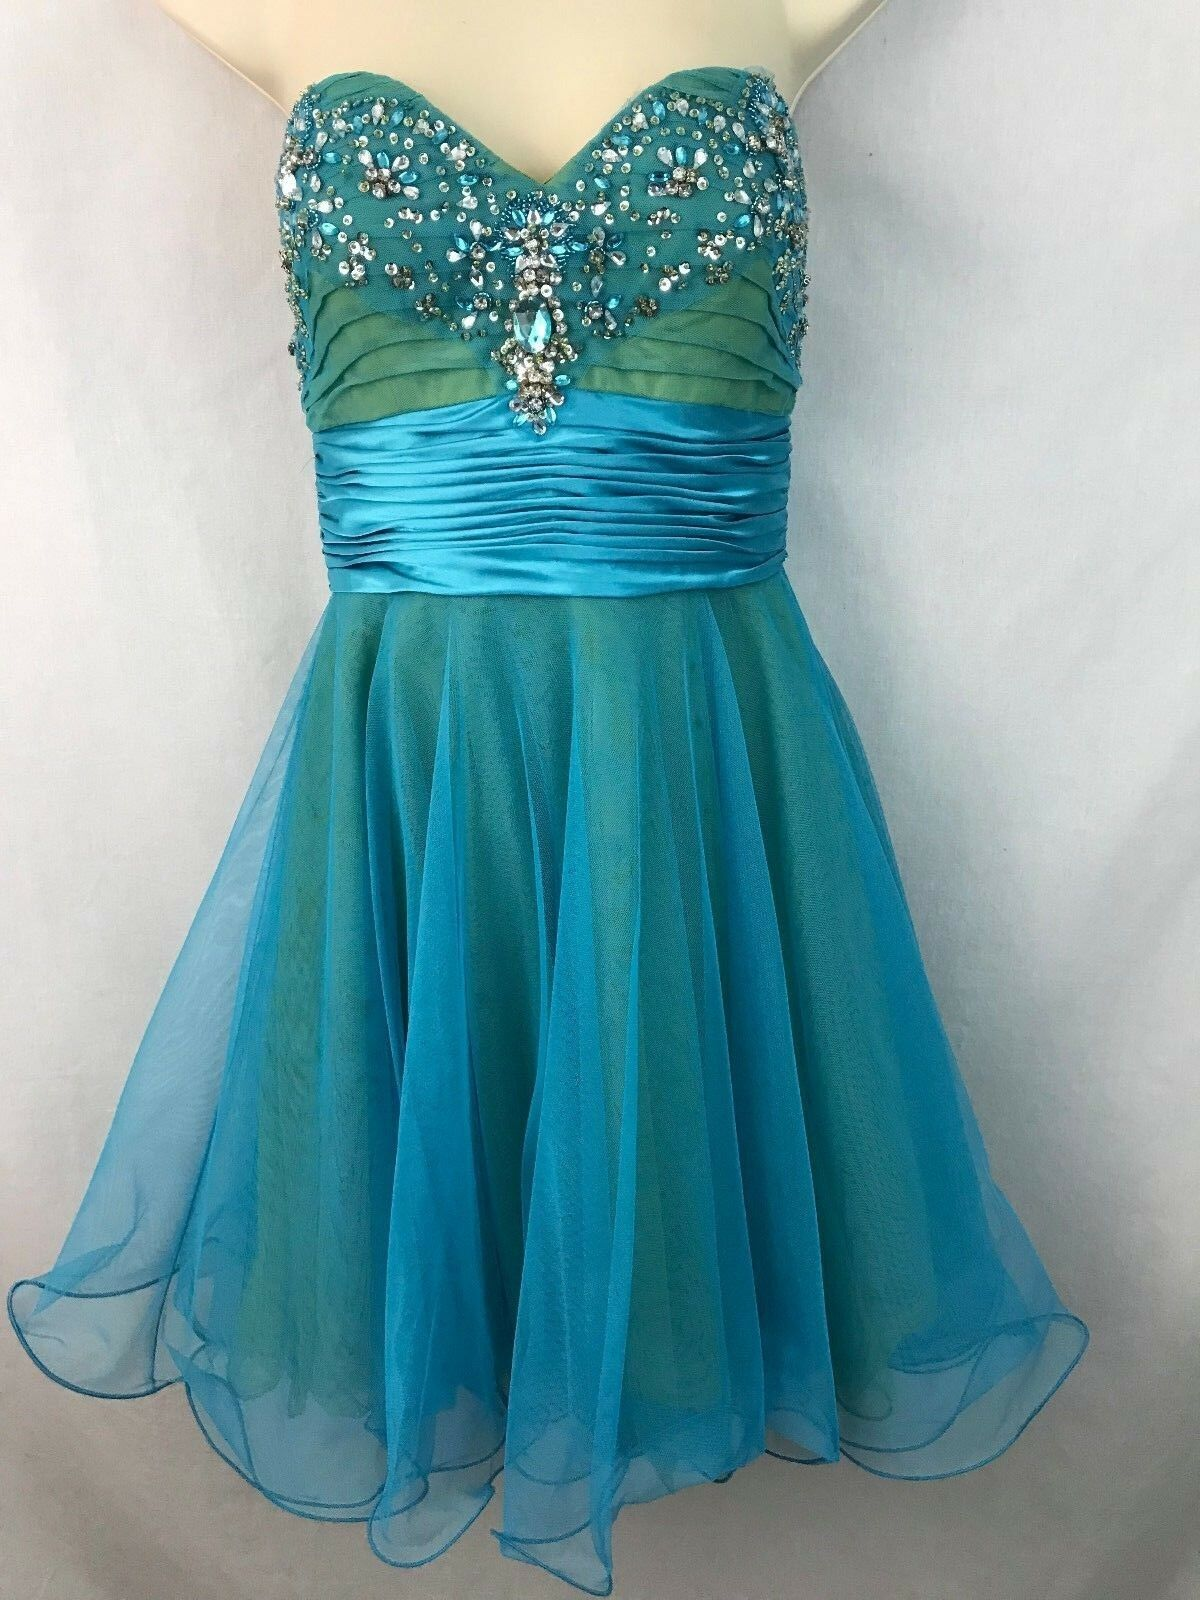 Adrianna Papell Sz 4 Strapless Prom Party Cocktail Dress Short Bright Blau Bling